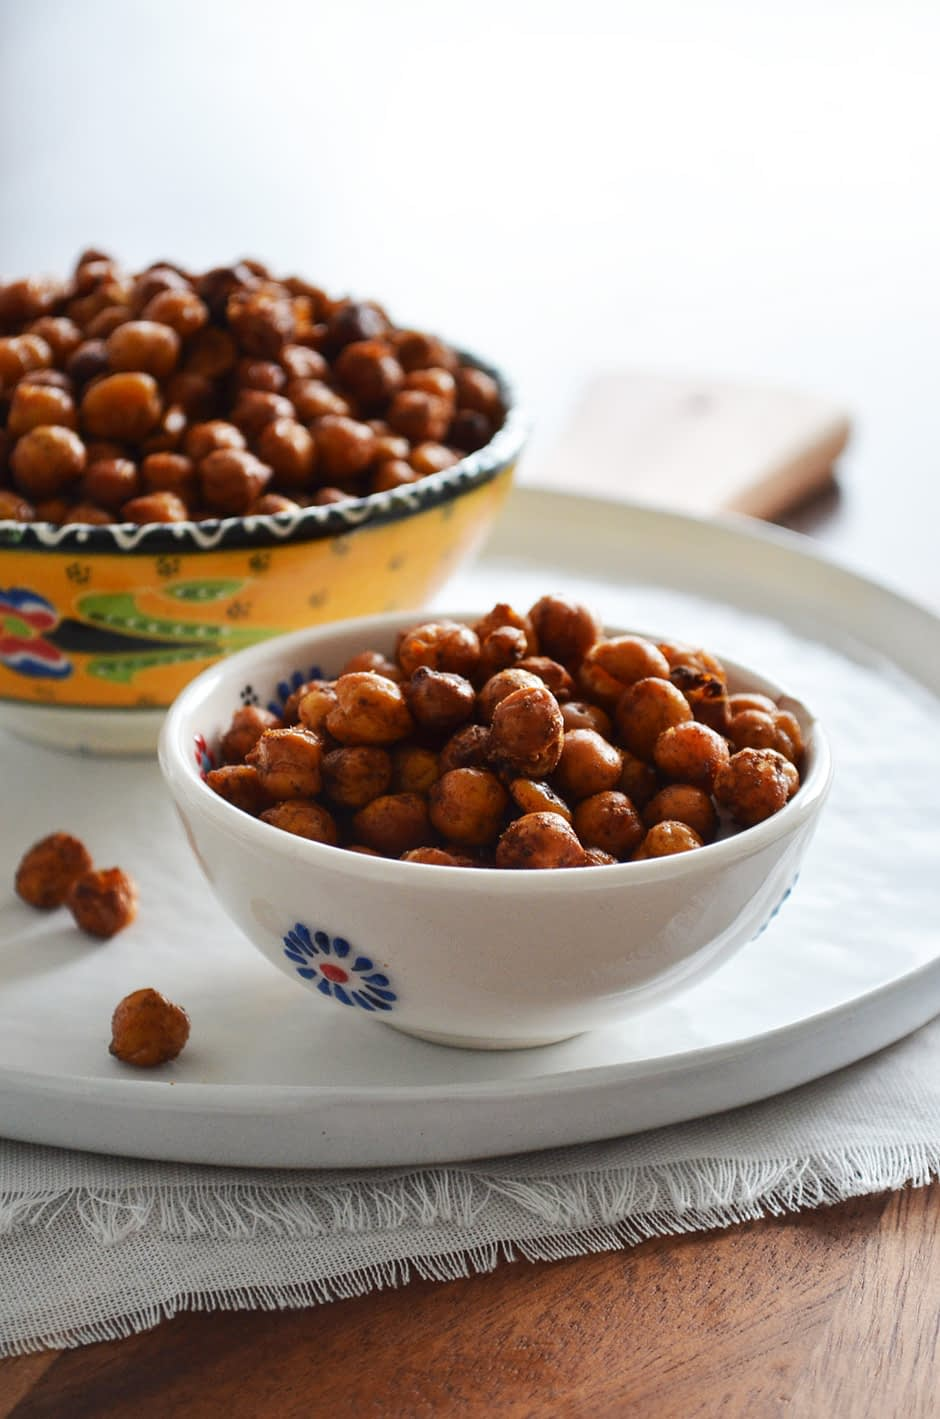 A recipe for Smokey Roasted Chickpeas. Perfectly crunchy and lightly flavored with pimentón (smoked paprika powder), garlic, black pepper and salt. Recipe by That Healthy Kitchen